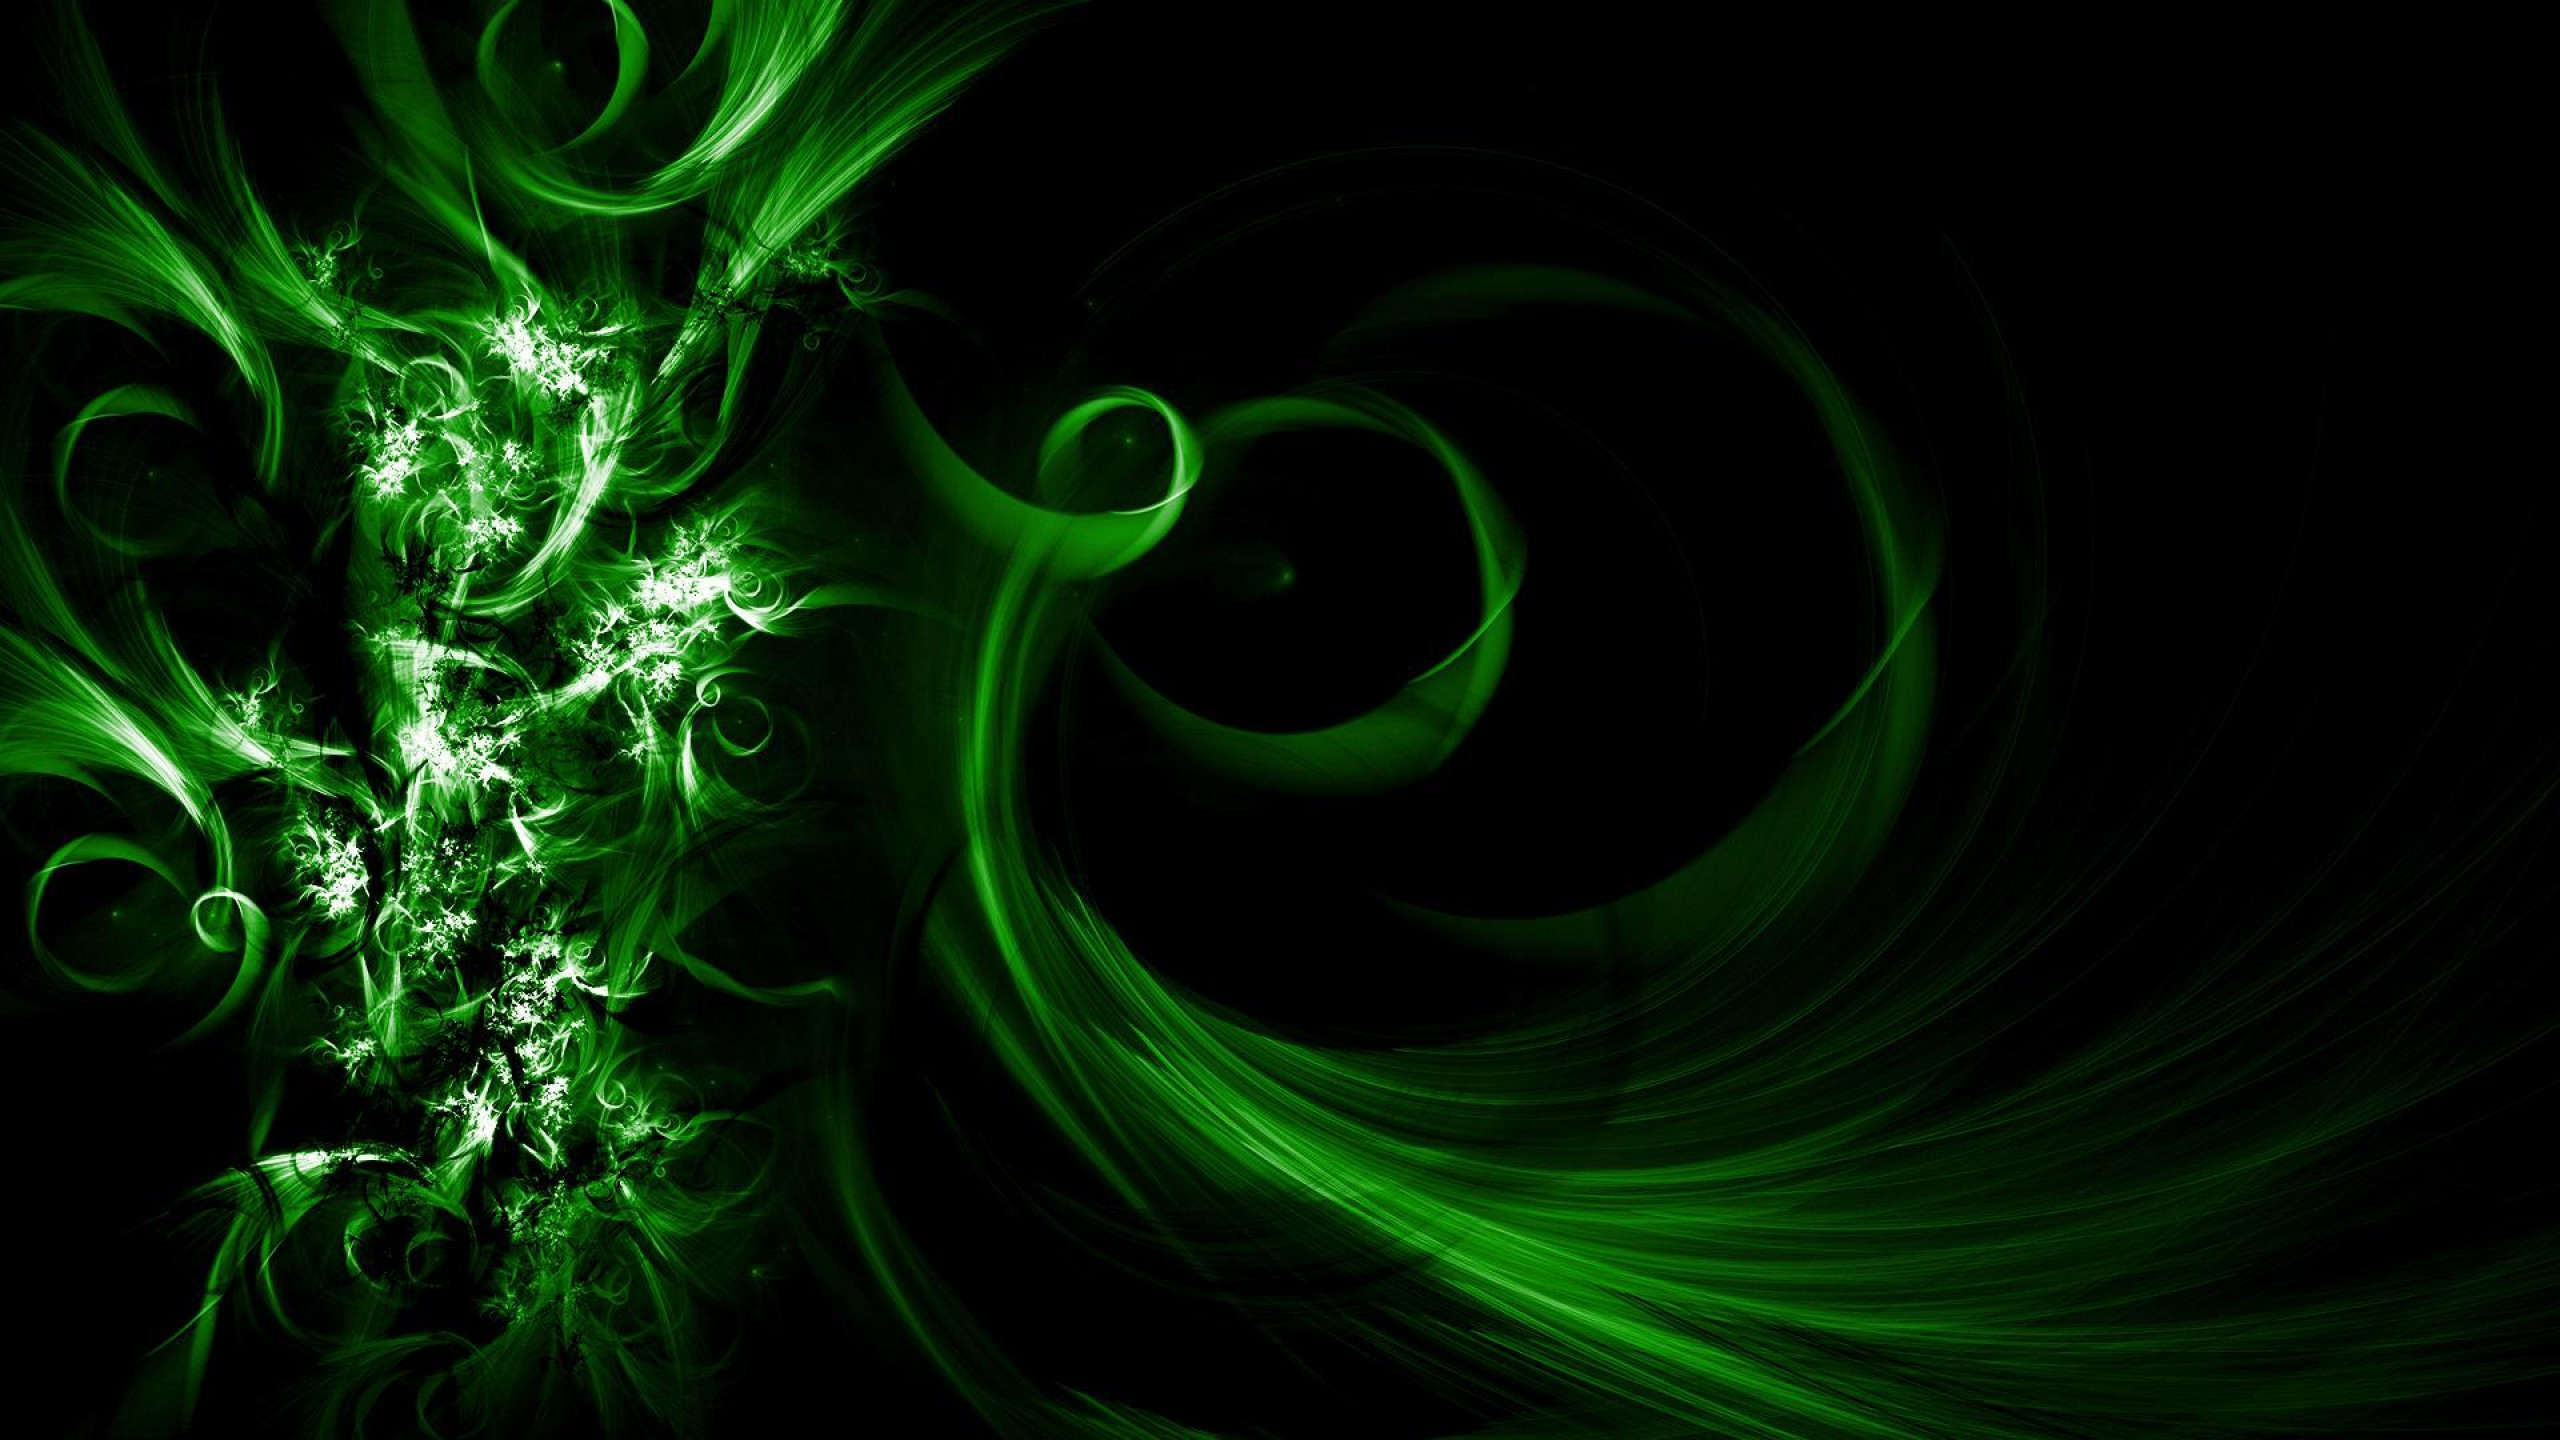 2560x1440 Download Cool Abstract Wallpapers HD Pictures In High Definition Or